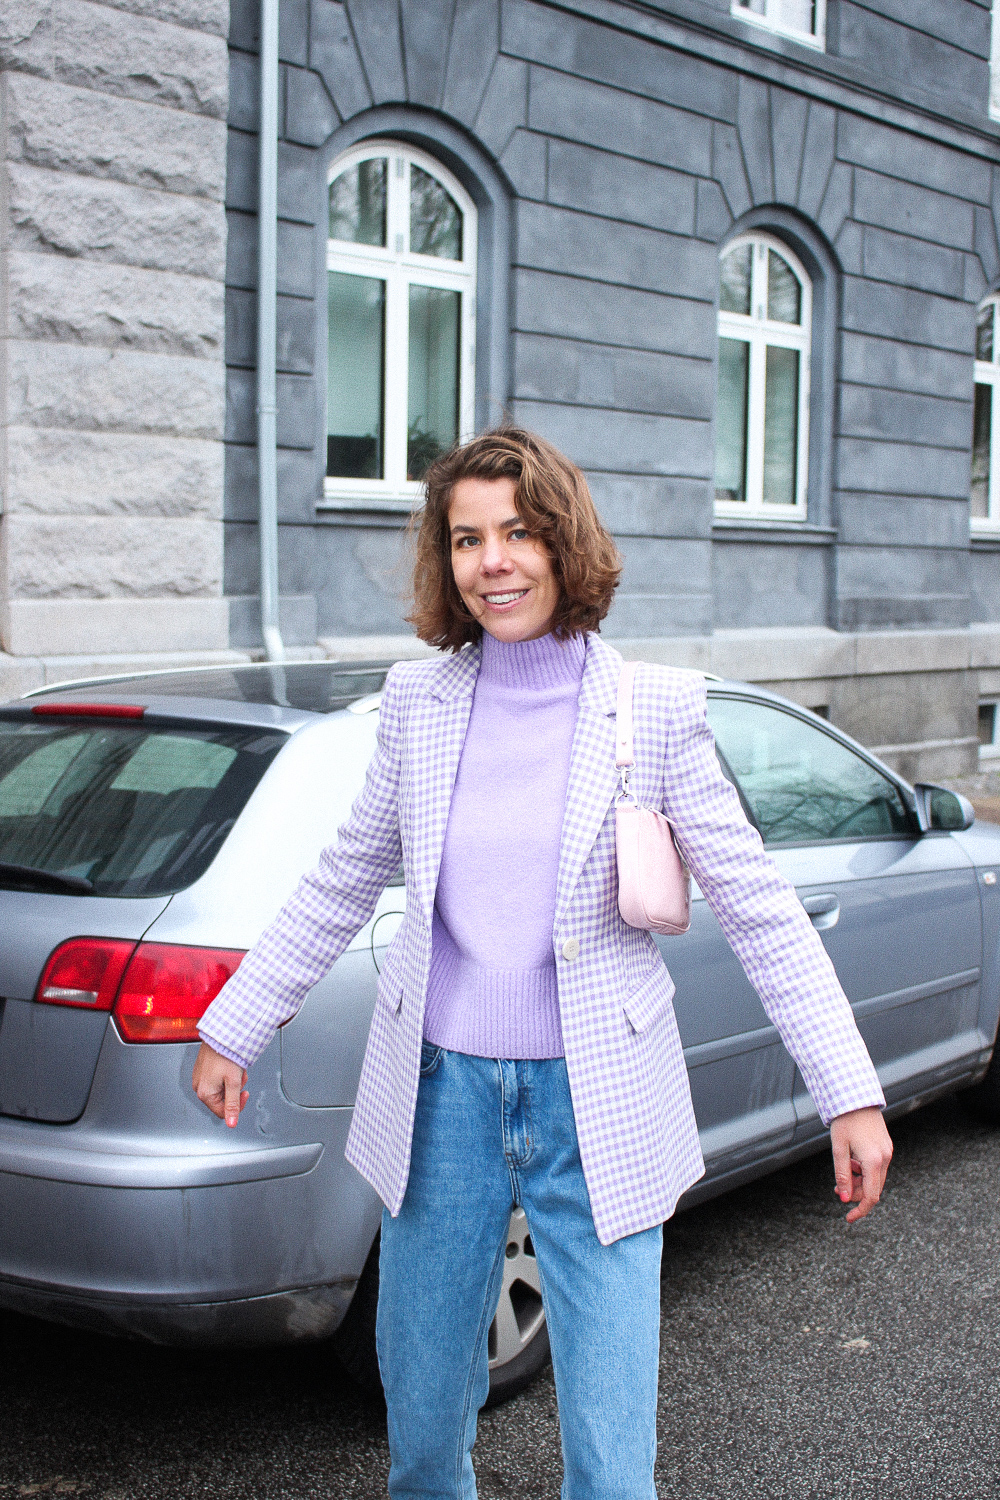 Lilla blazer fra & other stories